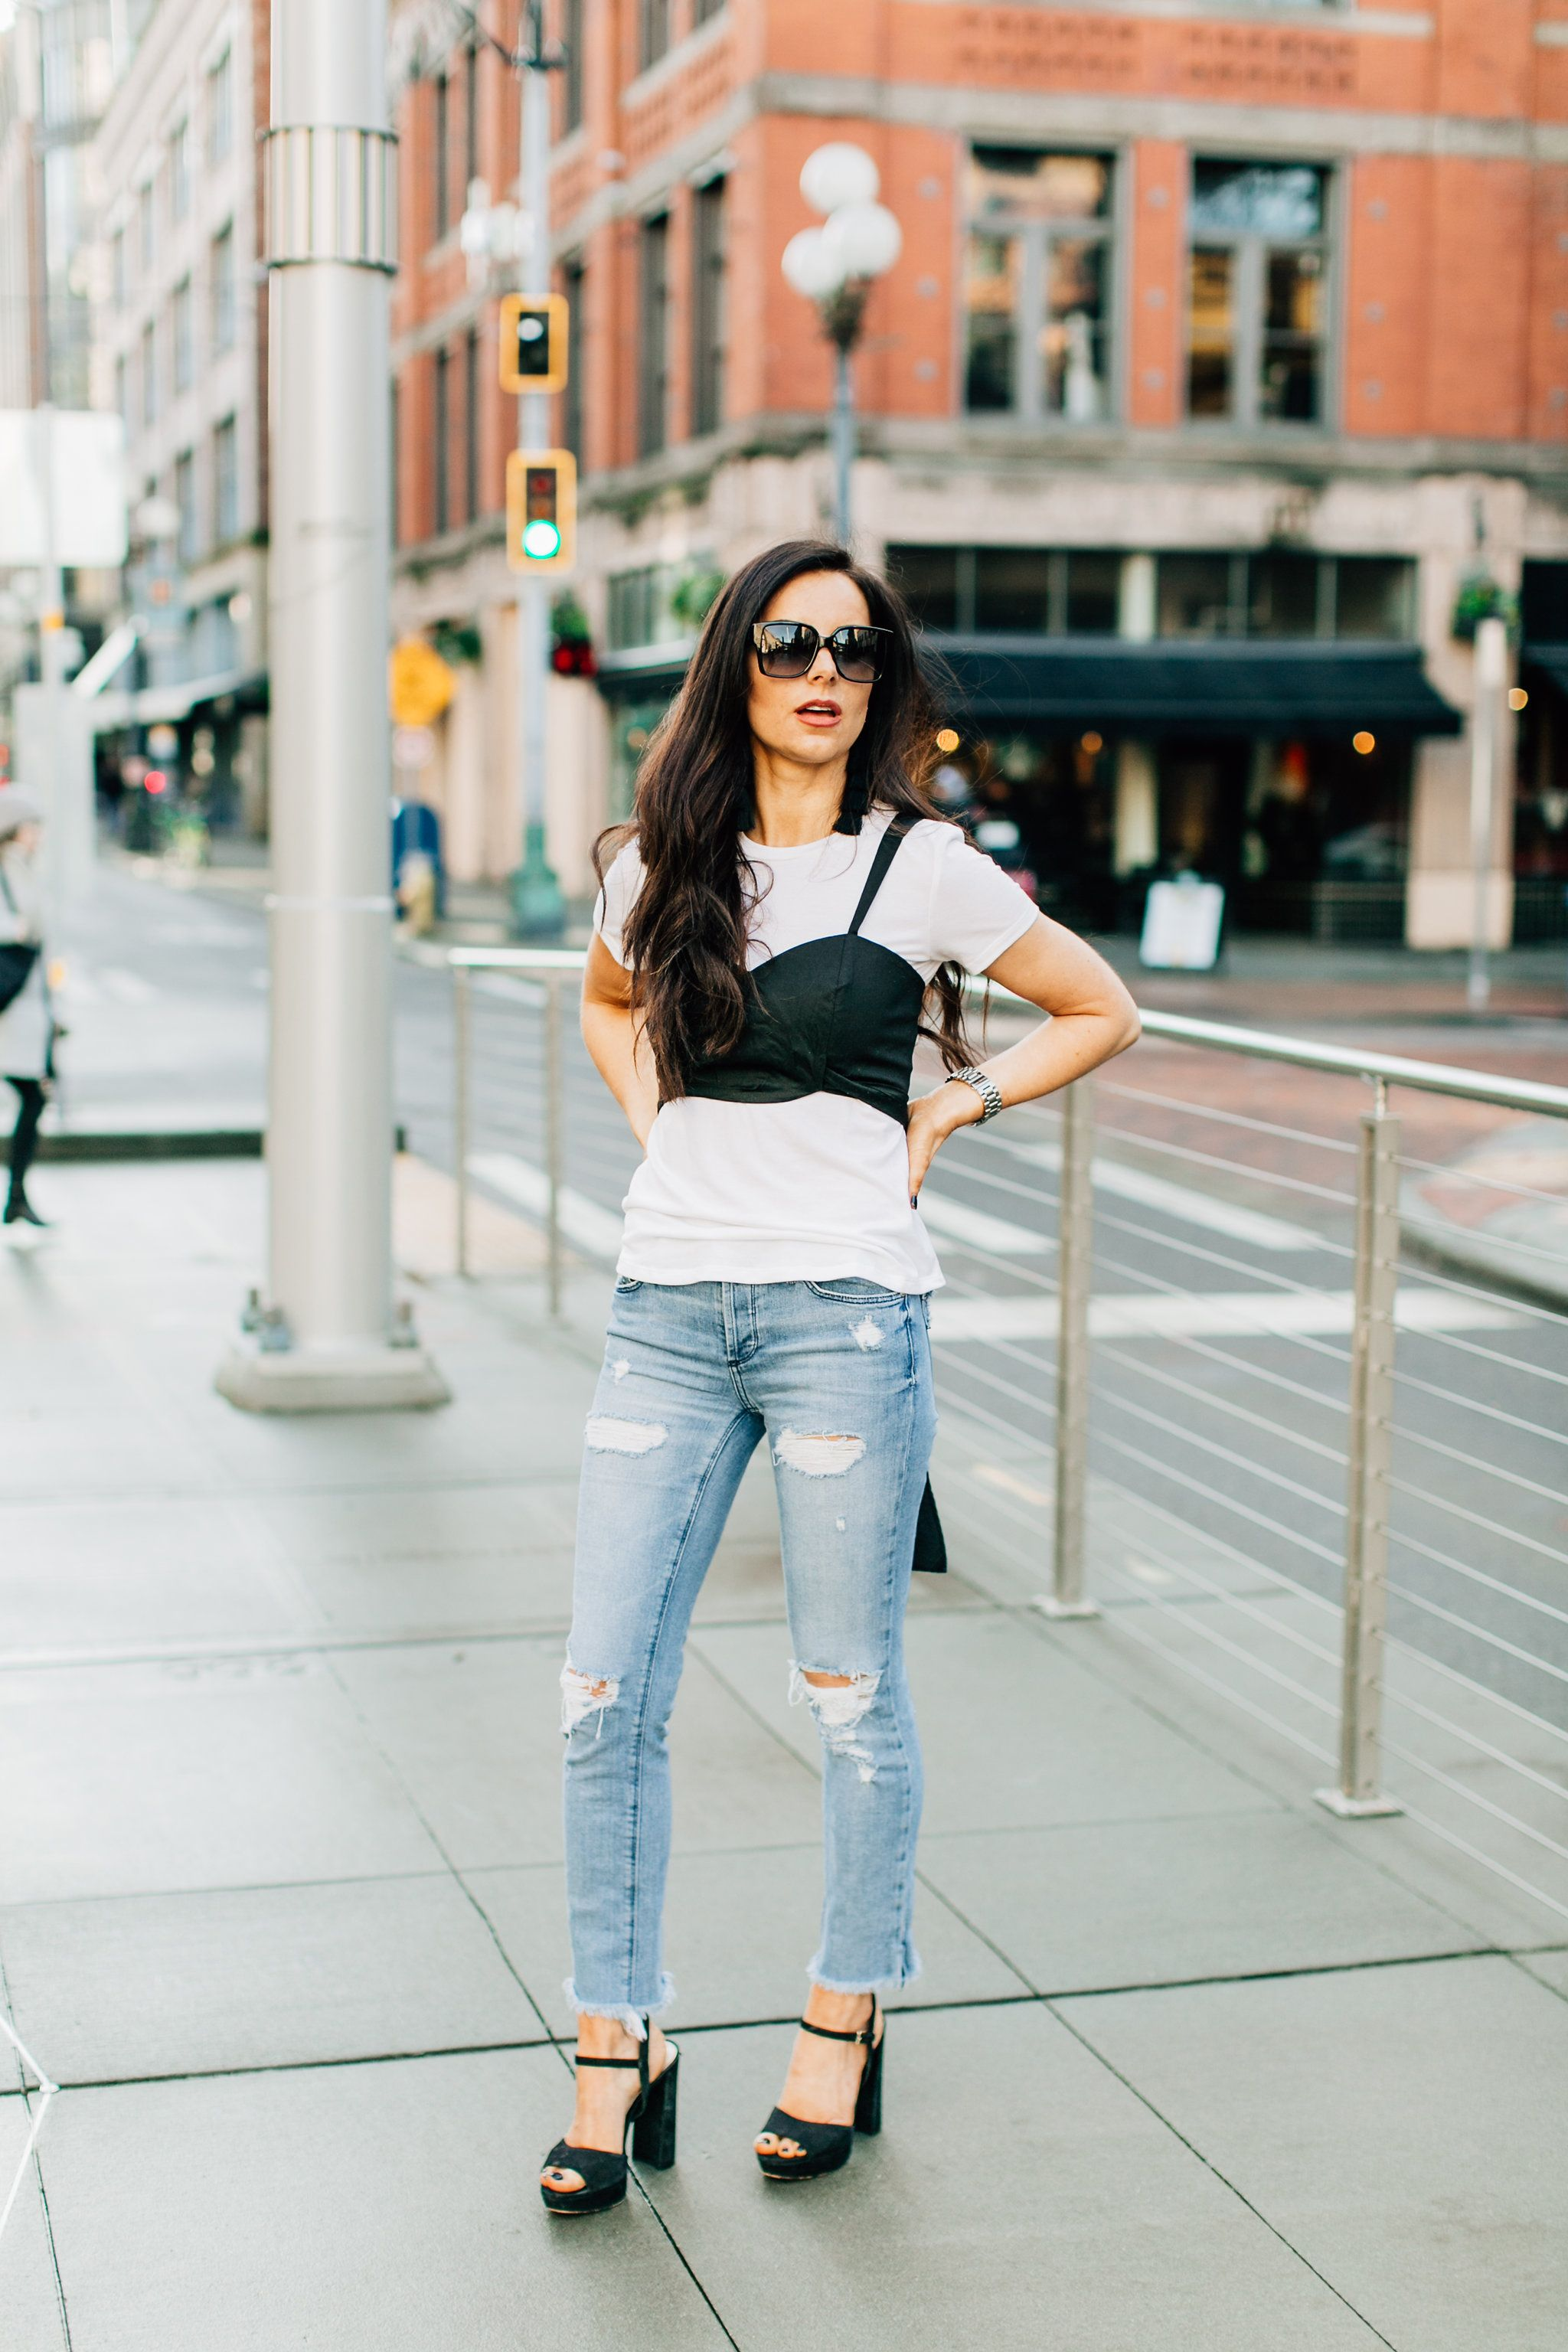 Fashion week How to denim wear bustier top for woman